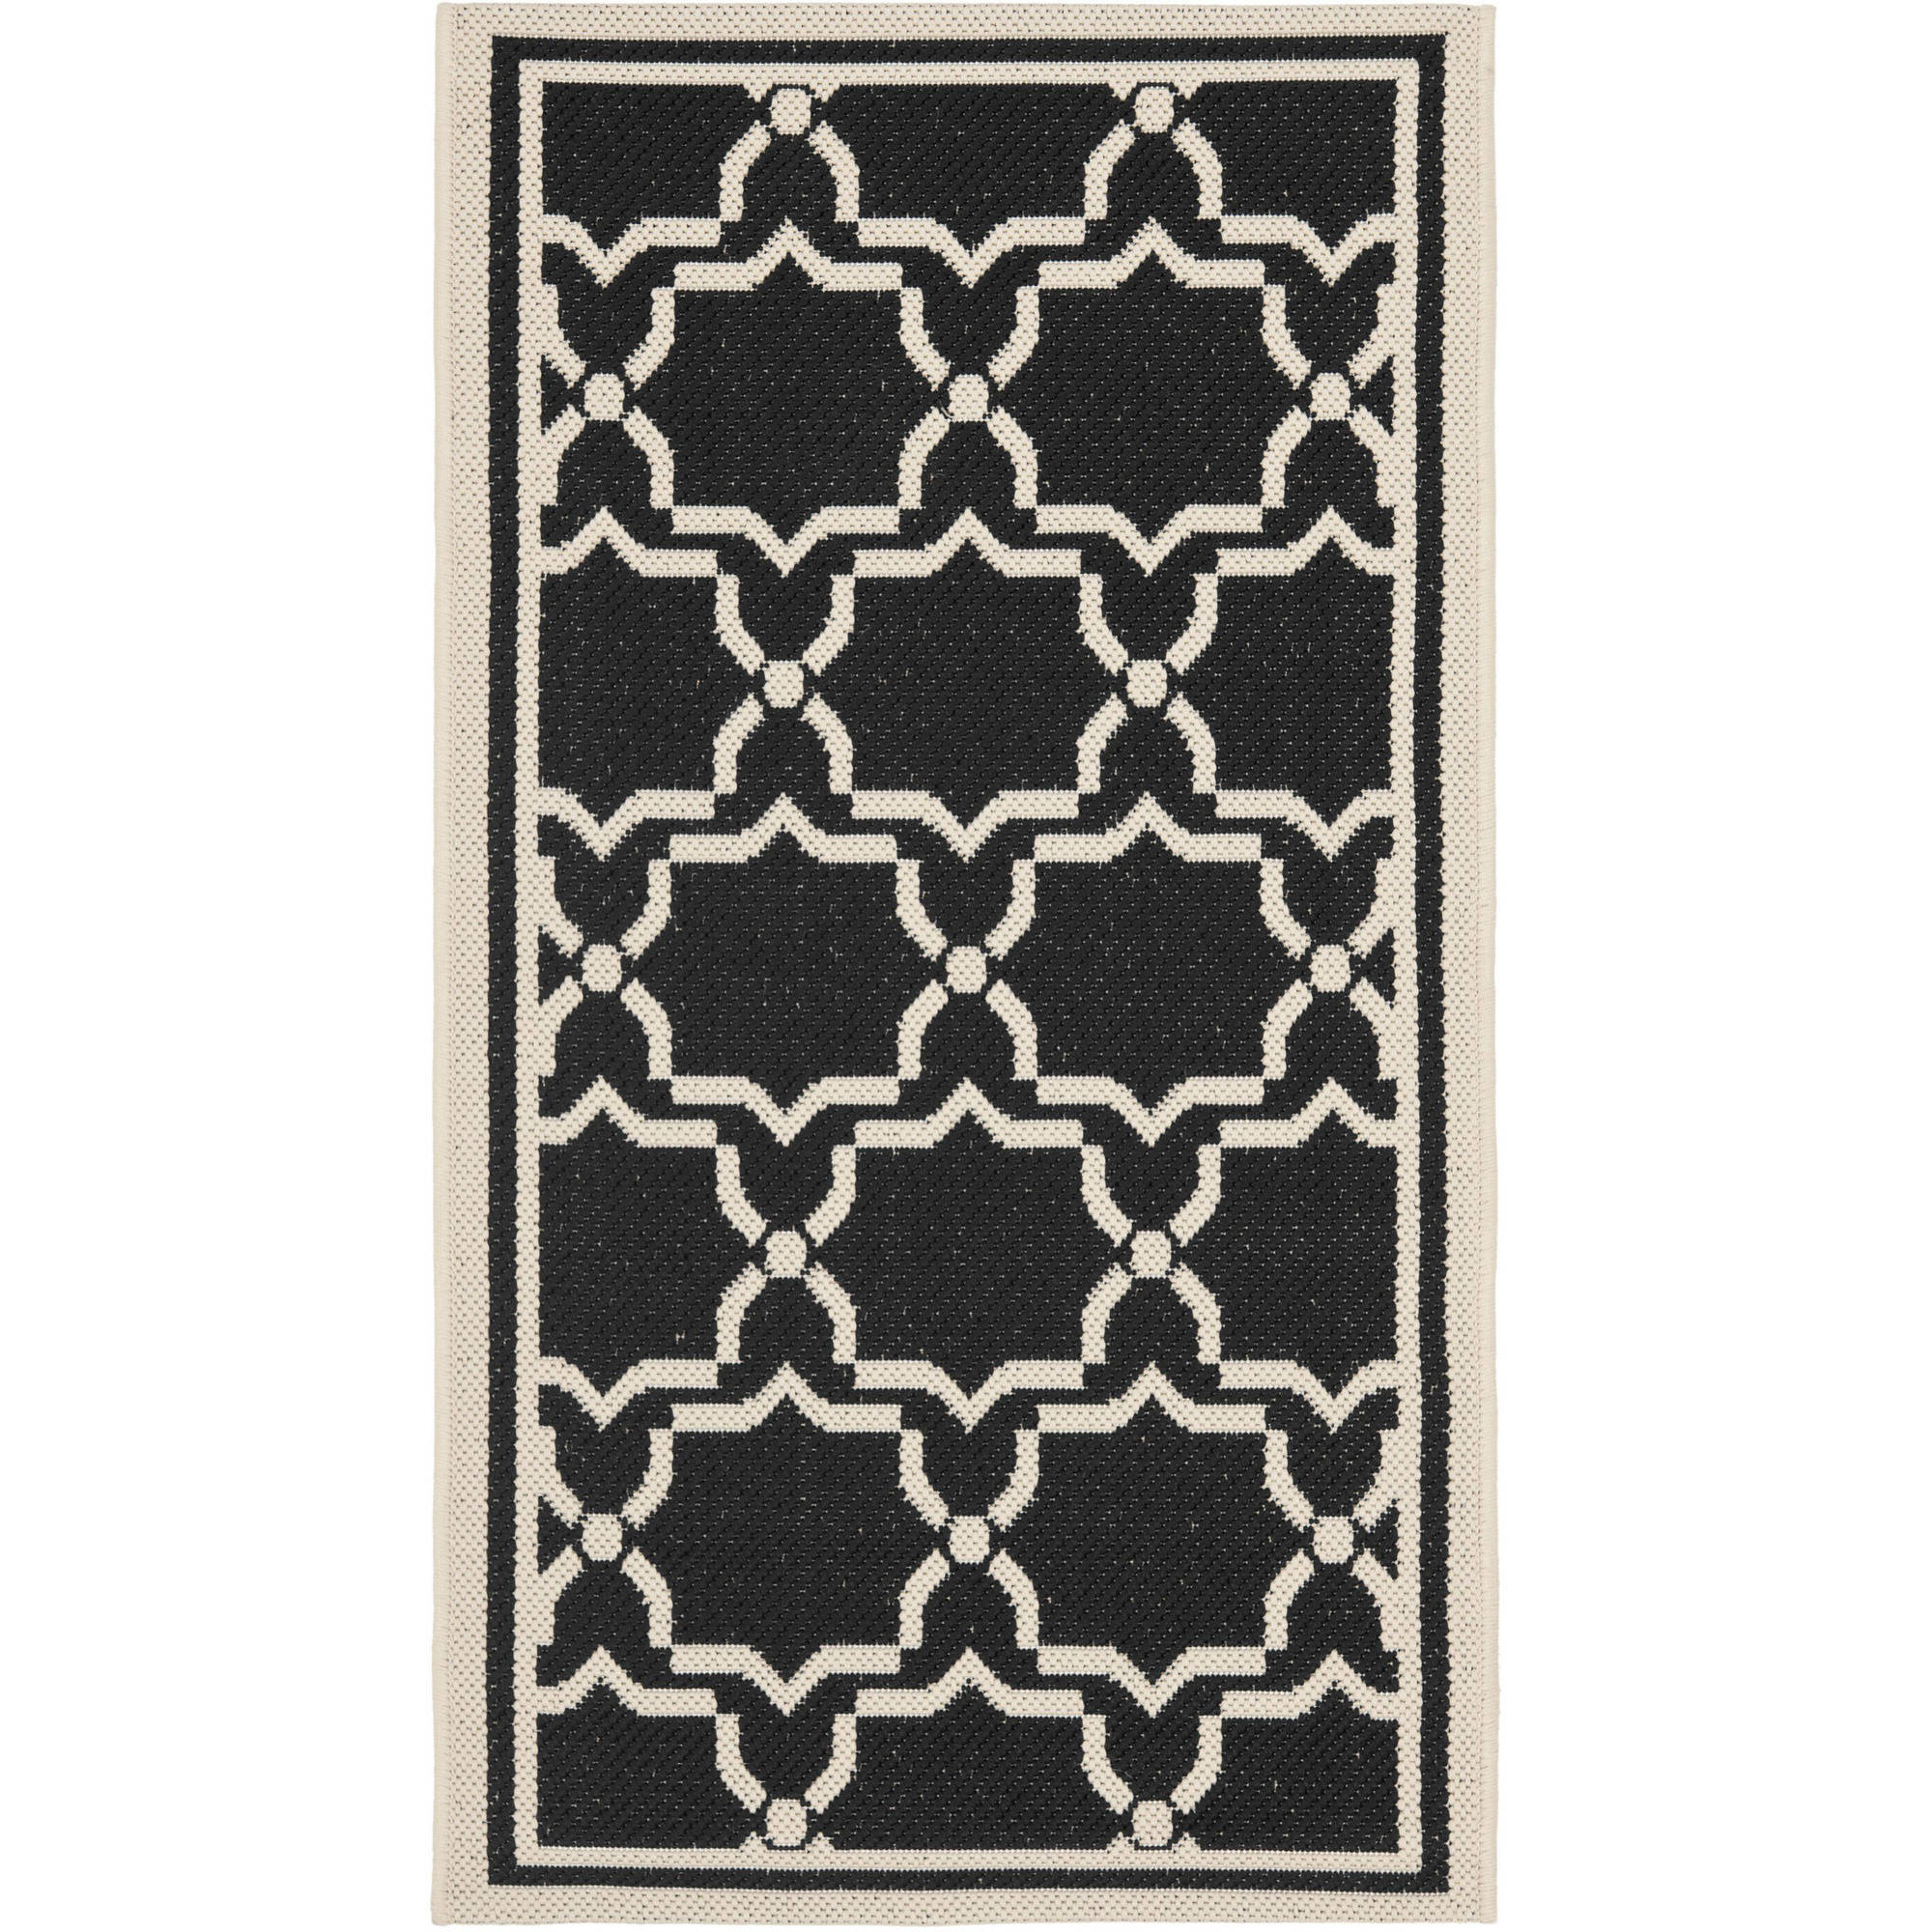 Safavieh Courtyard Allison Power-Loomed Indoor/Outdoor Area Rug or Runner